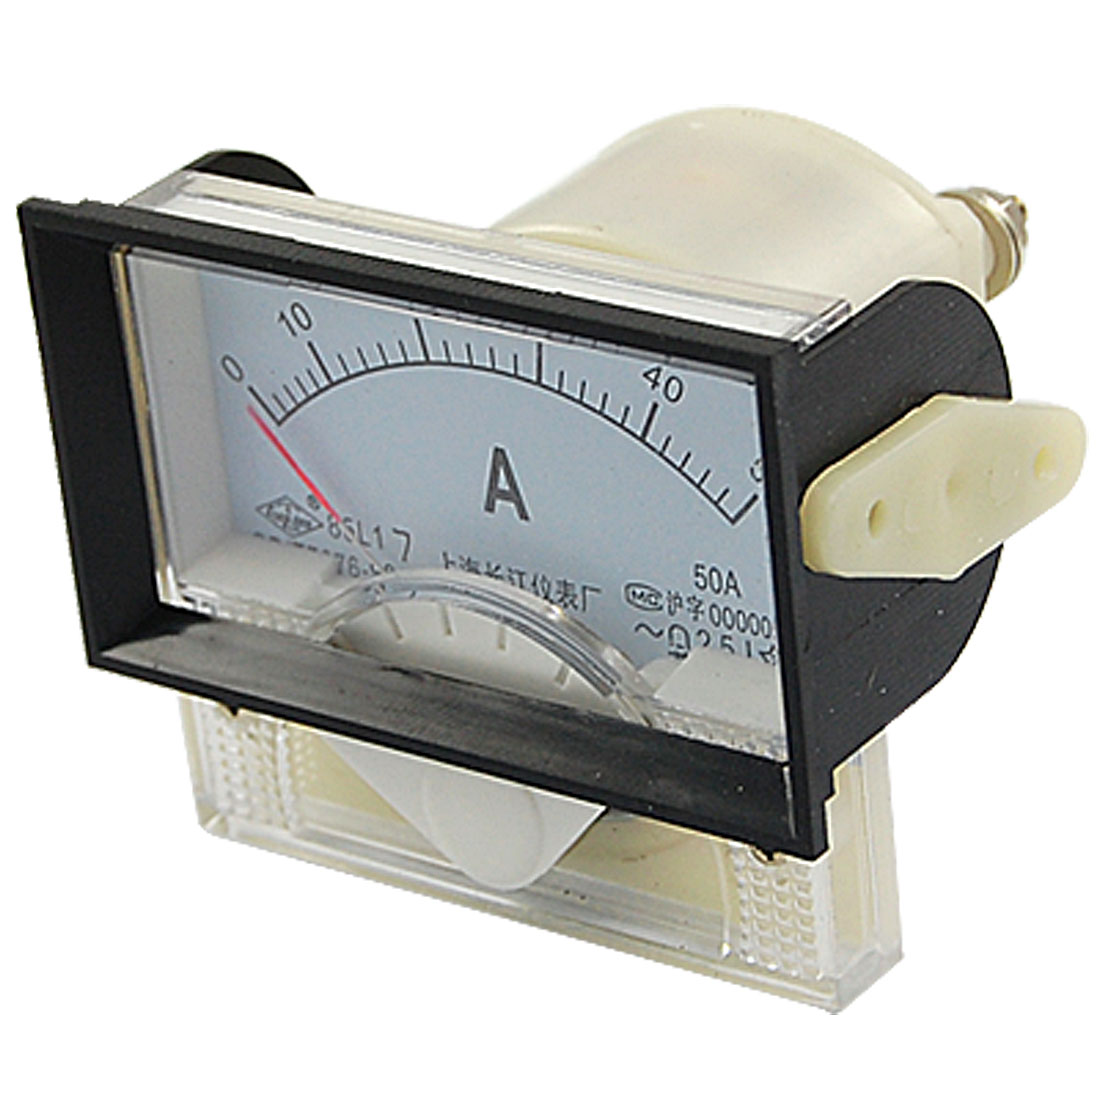 85L17 Class 2.5 Accuracy AC 0-50A Analog Panel Meter Ammeter